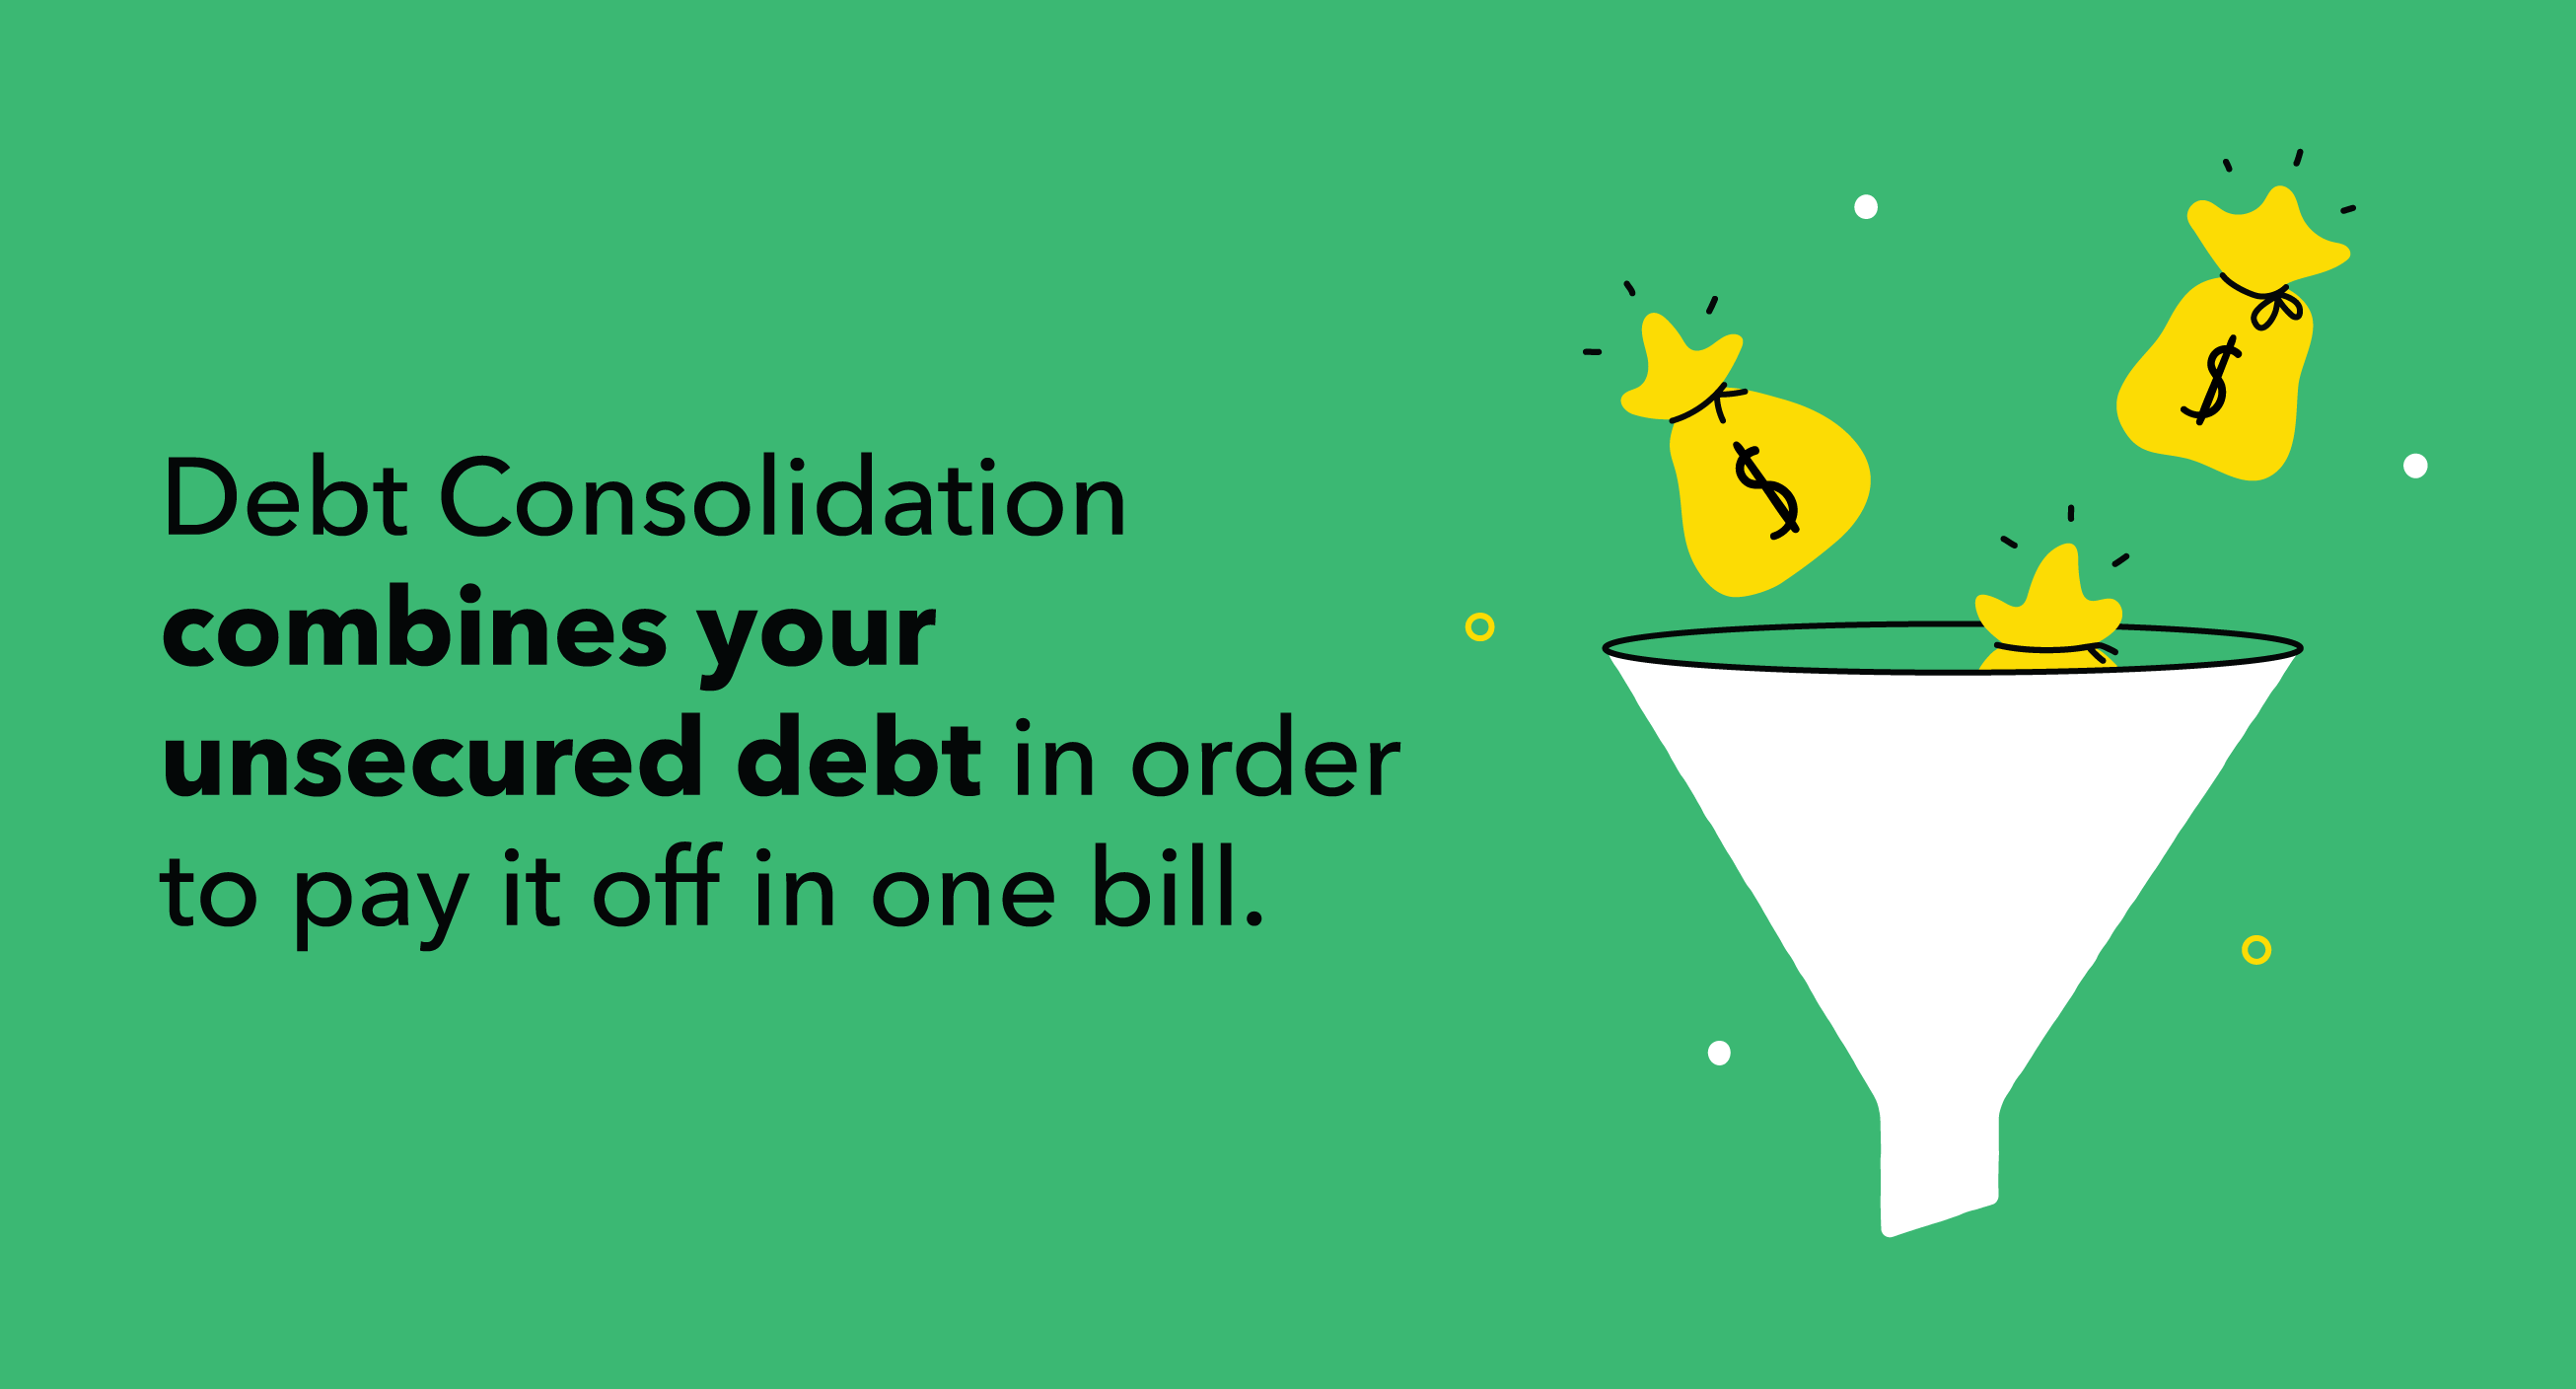 Debt Consolidation combines your unsecured debt in order to pay it off in one bill.